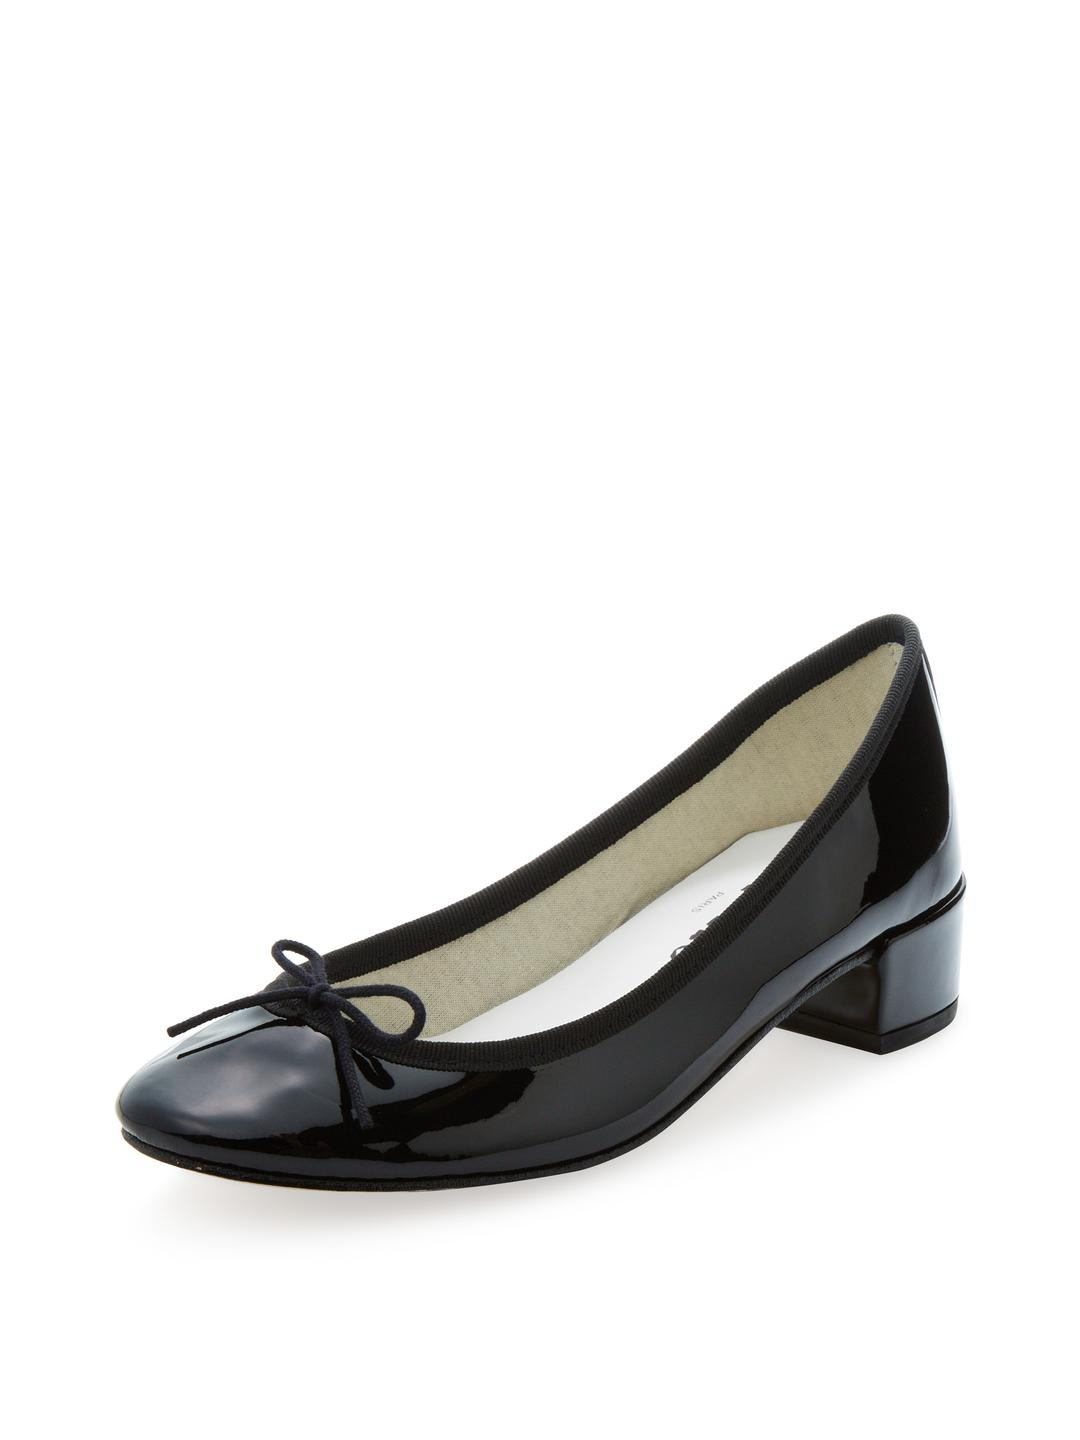 Camille Patent Mid-Height Ballerinas in Black Leather Repetto VxfYJOy